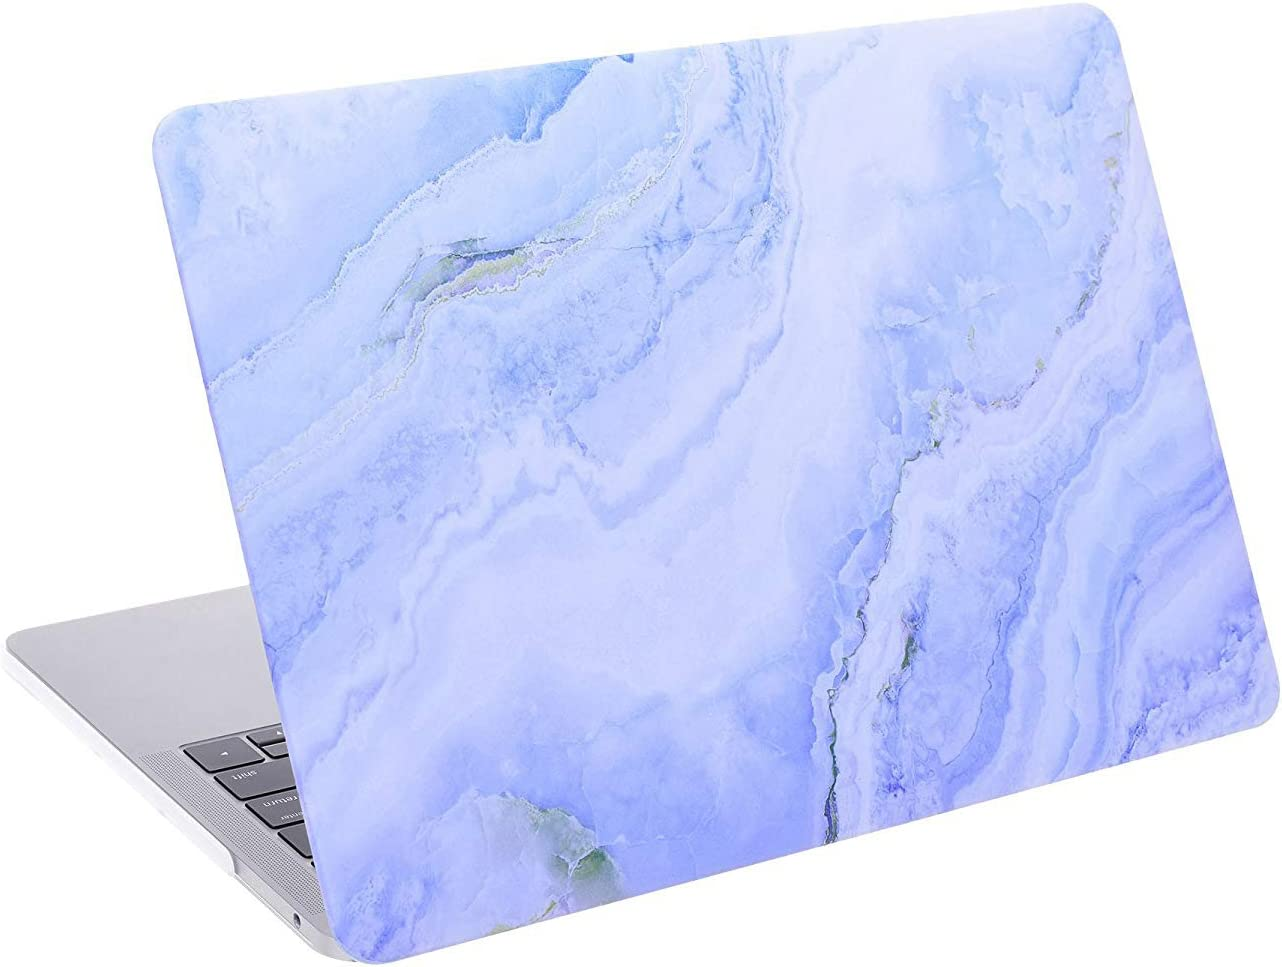 "Cosmos Rubberized Plastic Hard Shell Cover Case for MacBook Pro 13"" (MacBook Pro 13"" (A1989 / A1706 / A1708), White Blue Marble Pattern)"